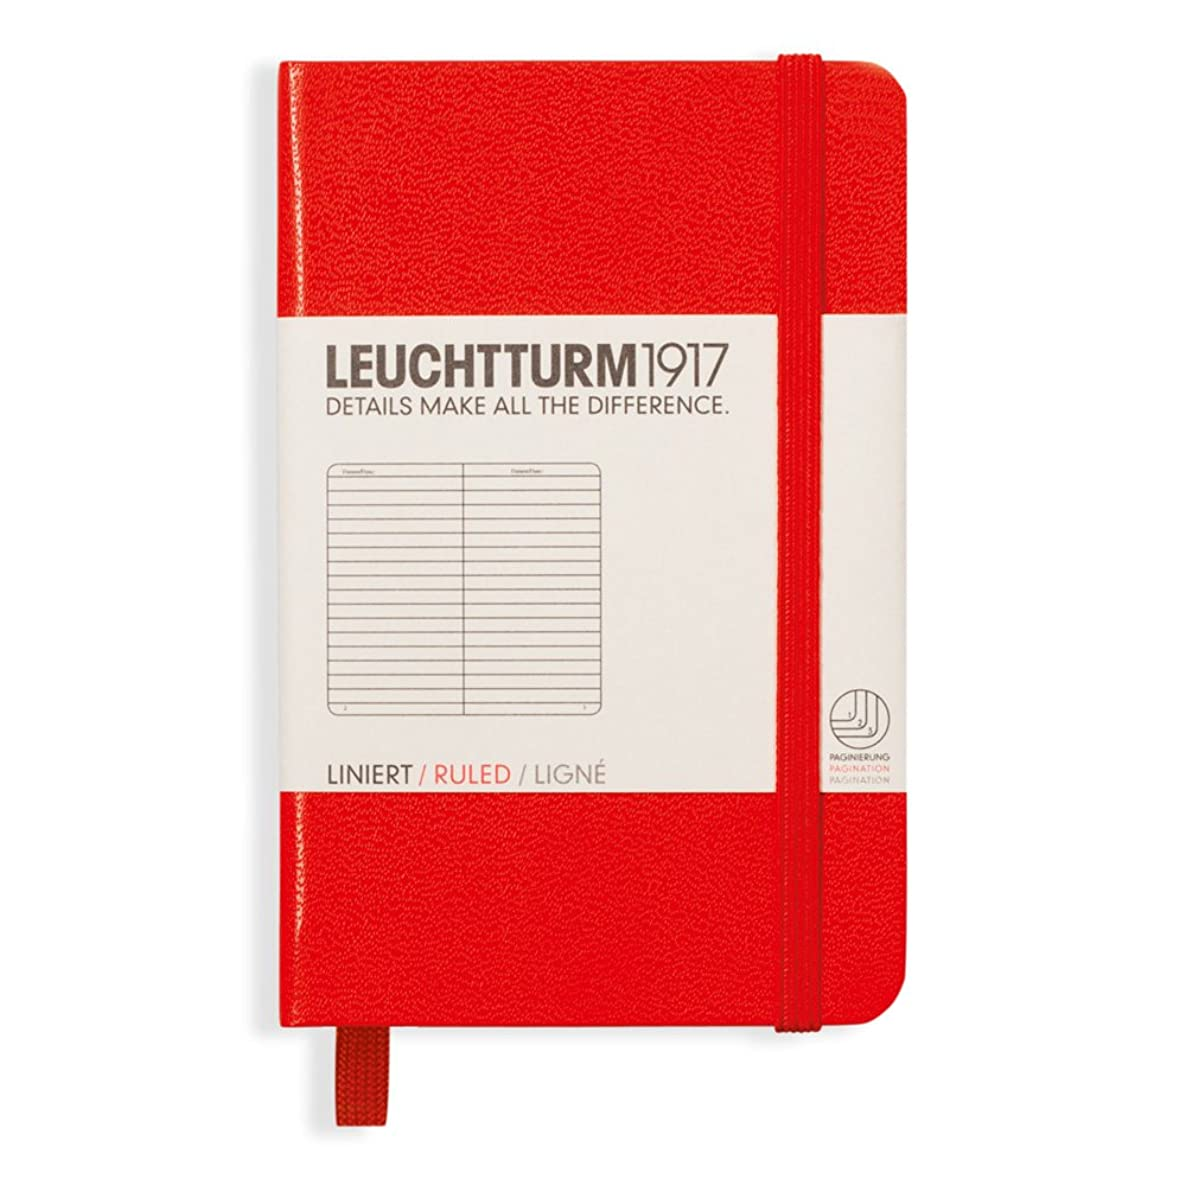 Leuchtturm1917 Mini Hardcover Notebook, 2.76 X 4.33 inches, 169 Lined Pages, Red (349347) stih1052195536